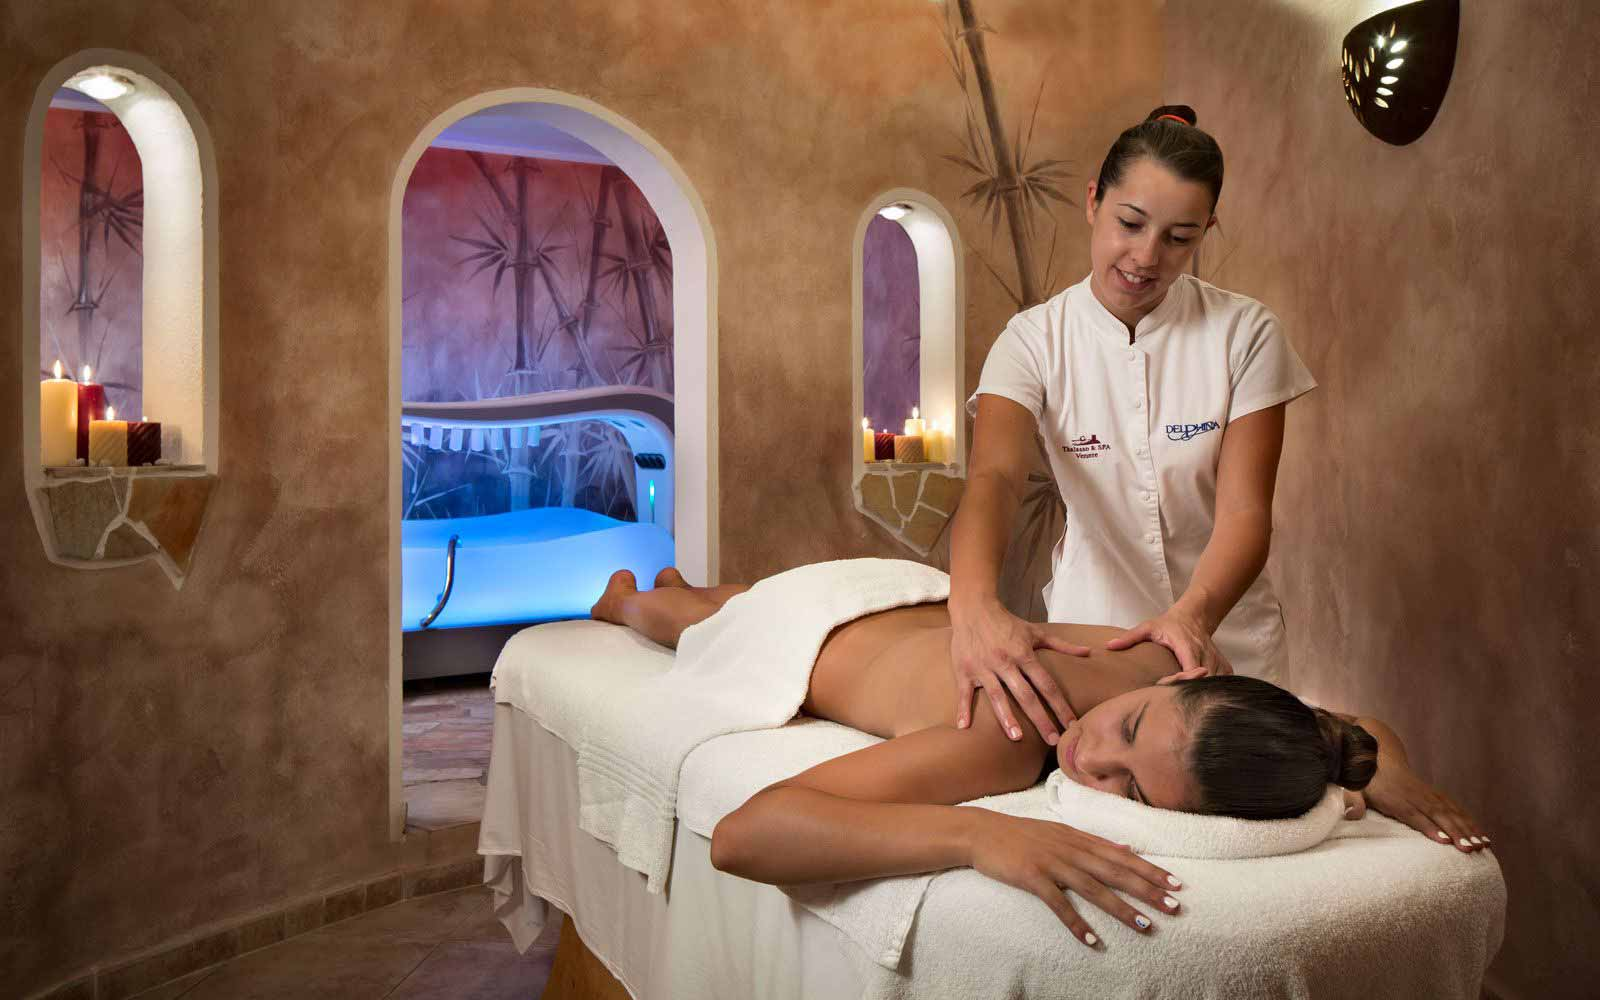 Massages at Hotel Relax Torreruja Thalasso & Spa